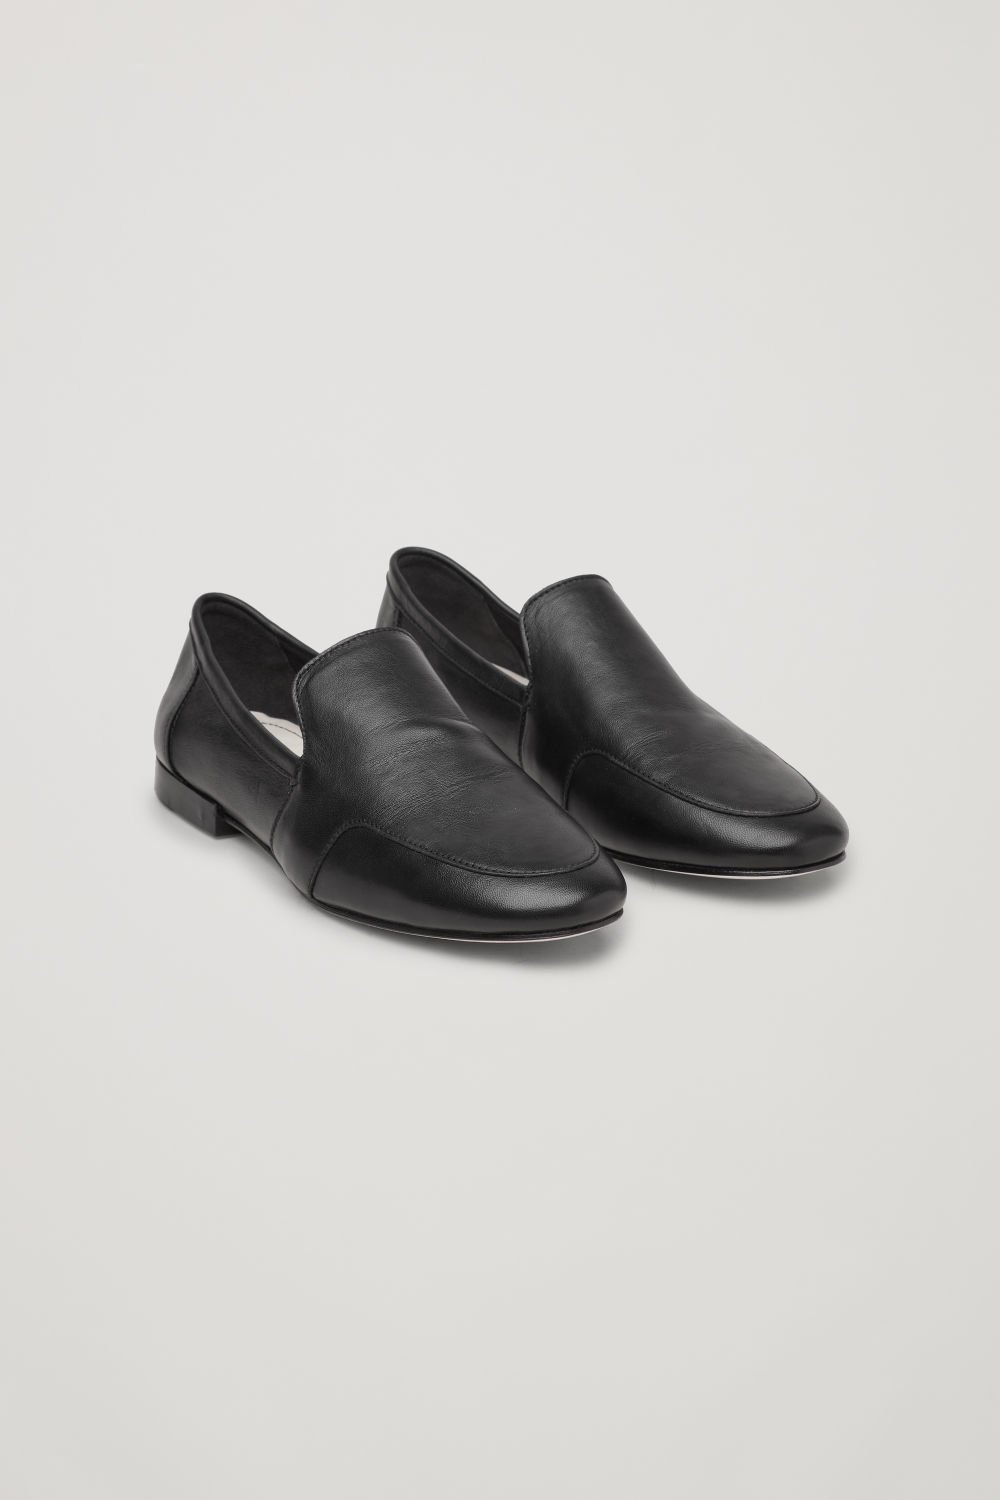 코스 COS SOFT LOAFERS,Black